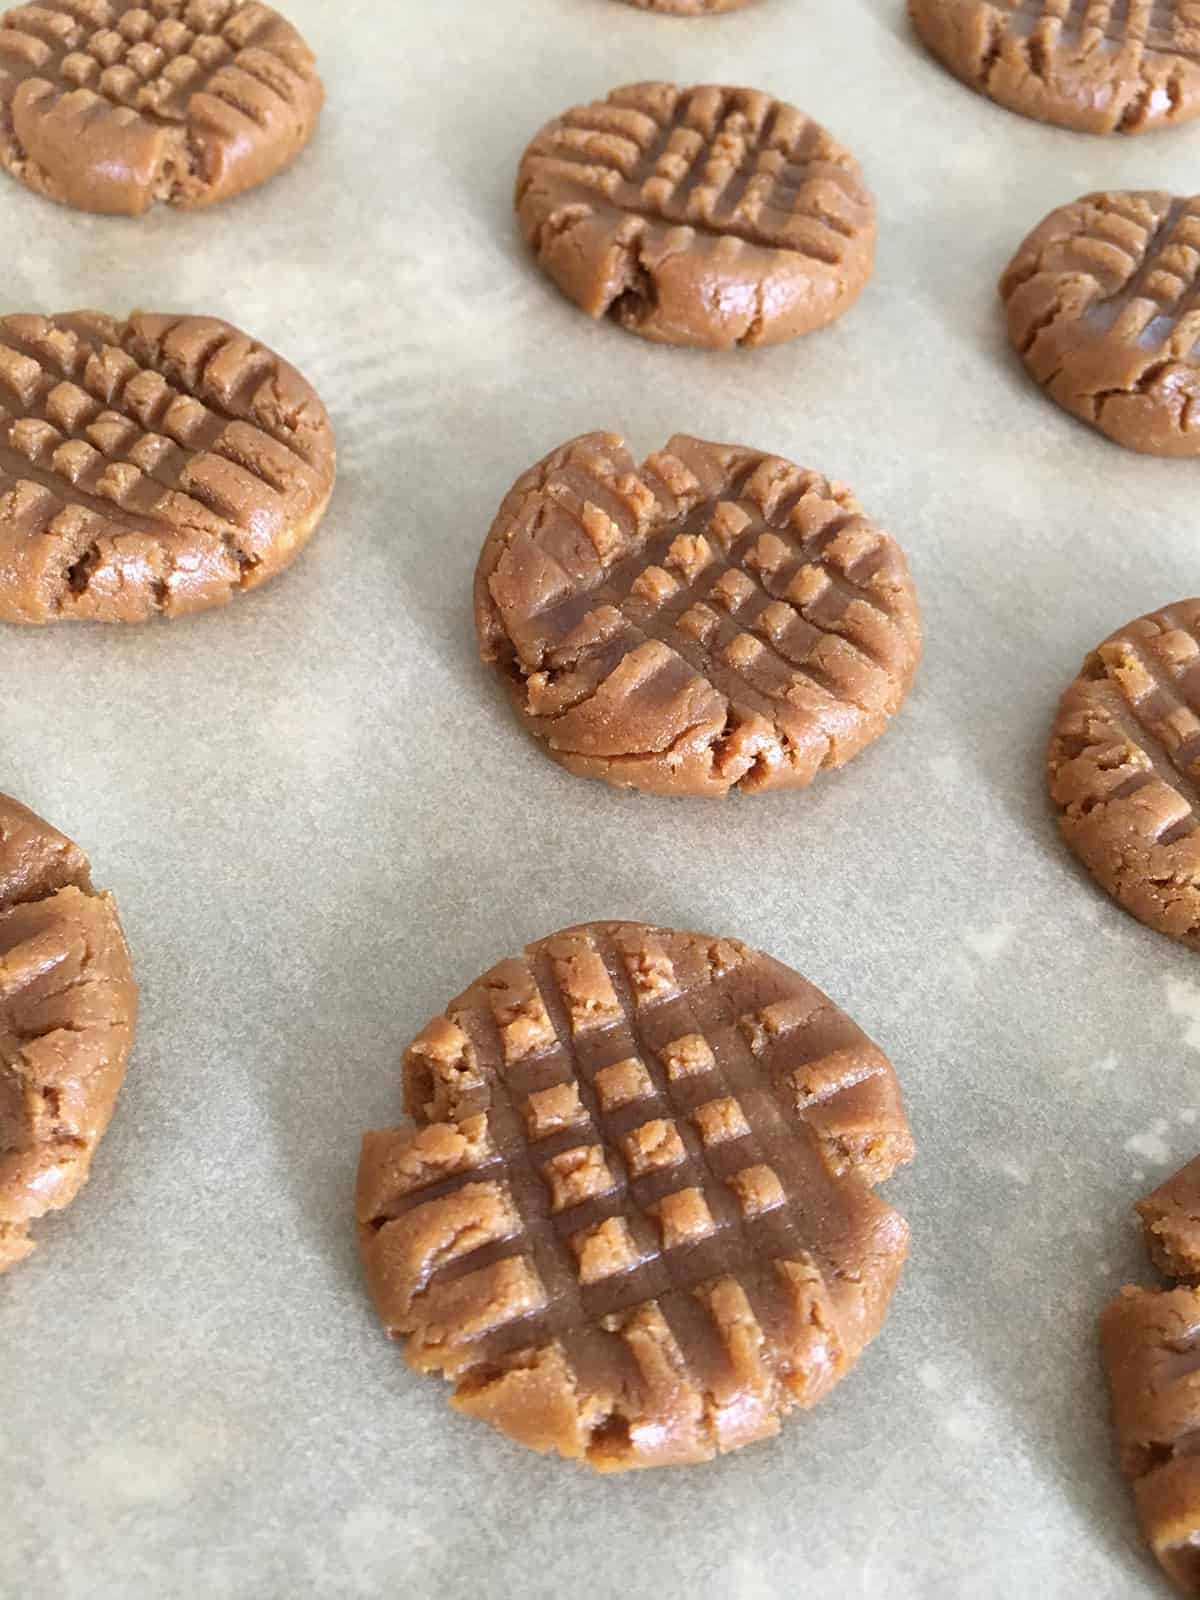 Close up of peanut butter cookies with a crisscross design on their tops